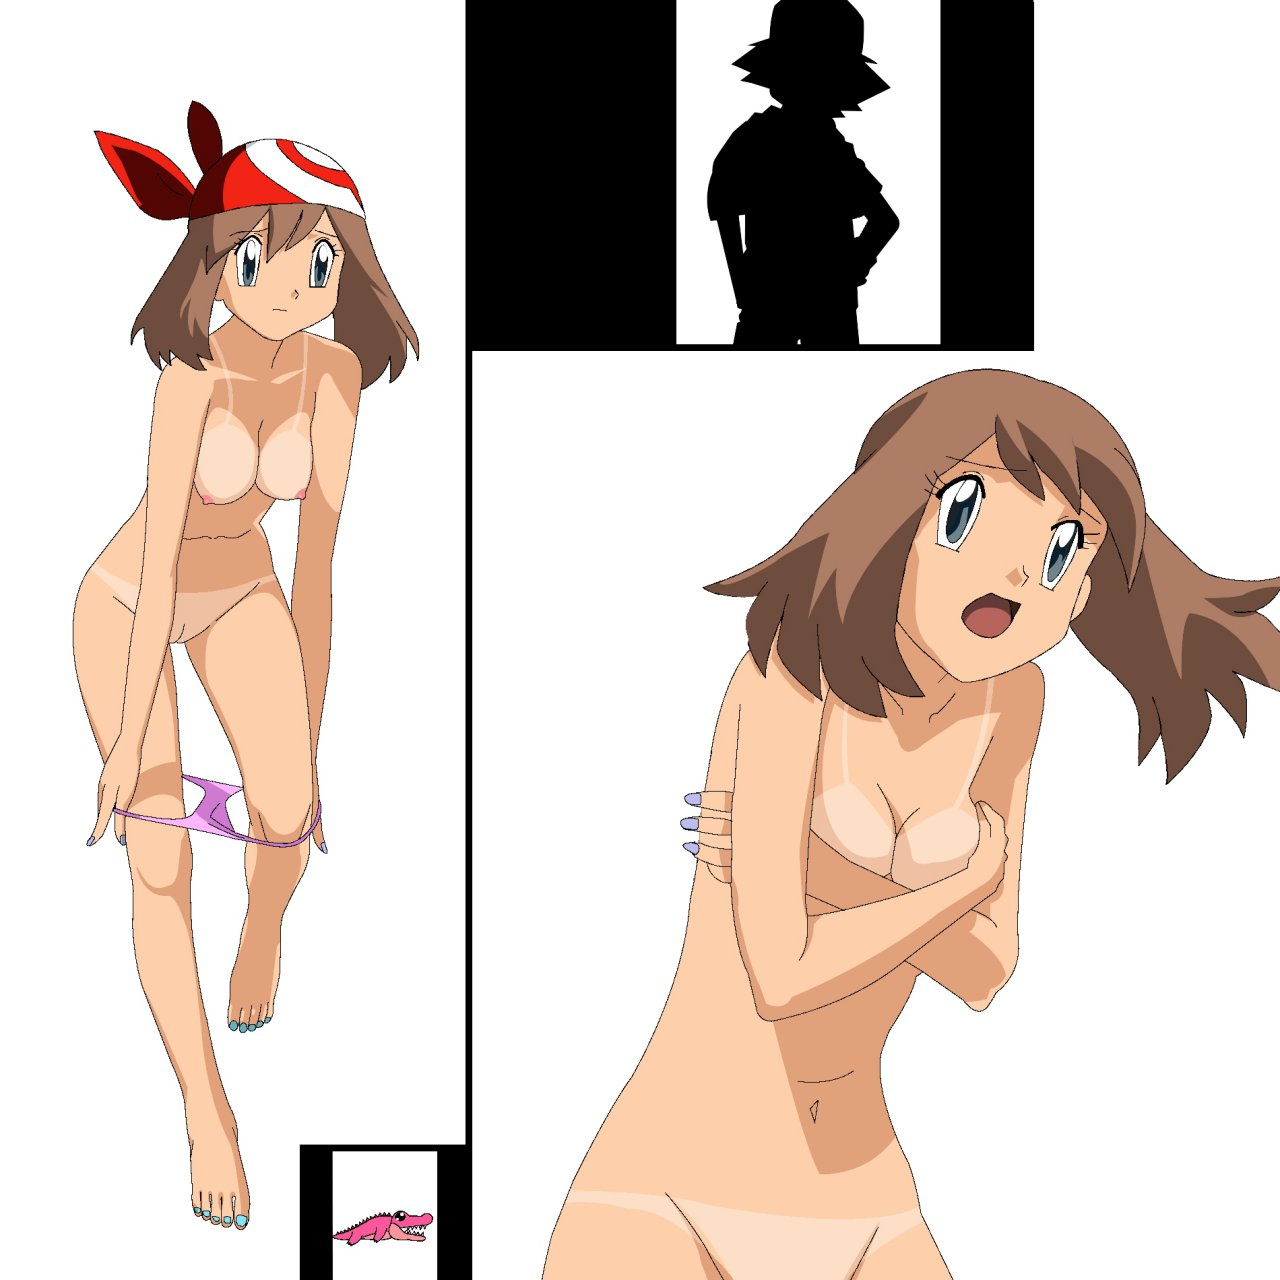 Pokemon trainer may nude